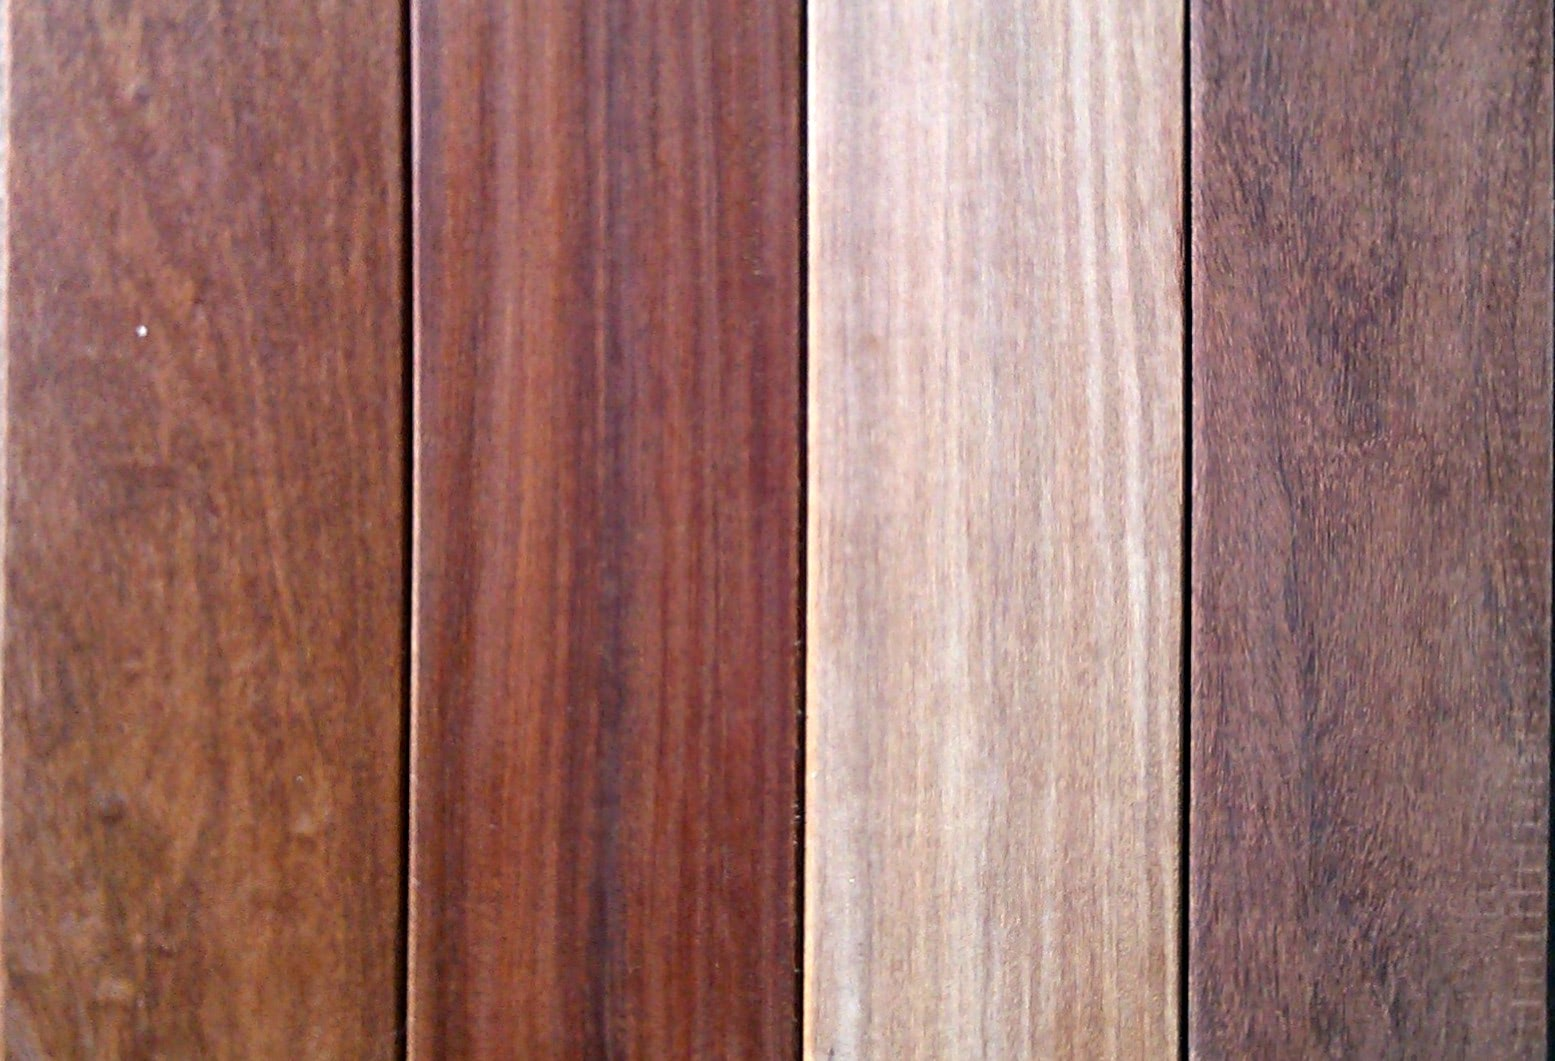 check out Mataverde hardwood decking species